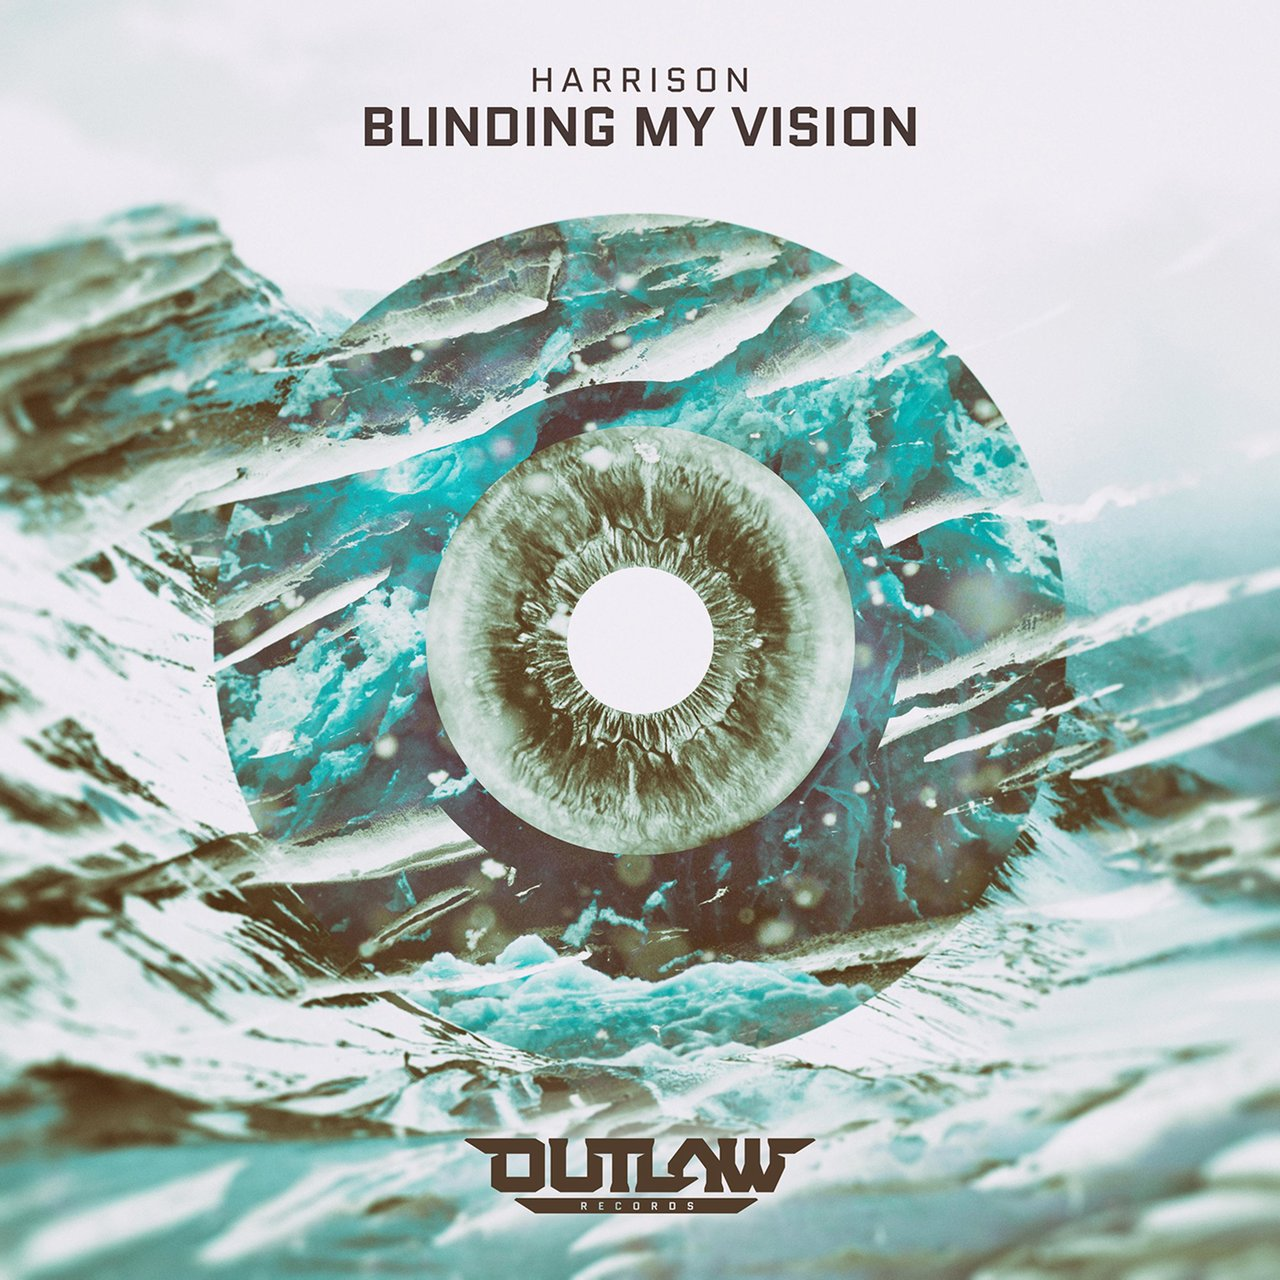 Blinding My Vision